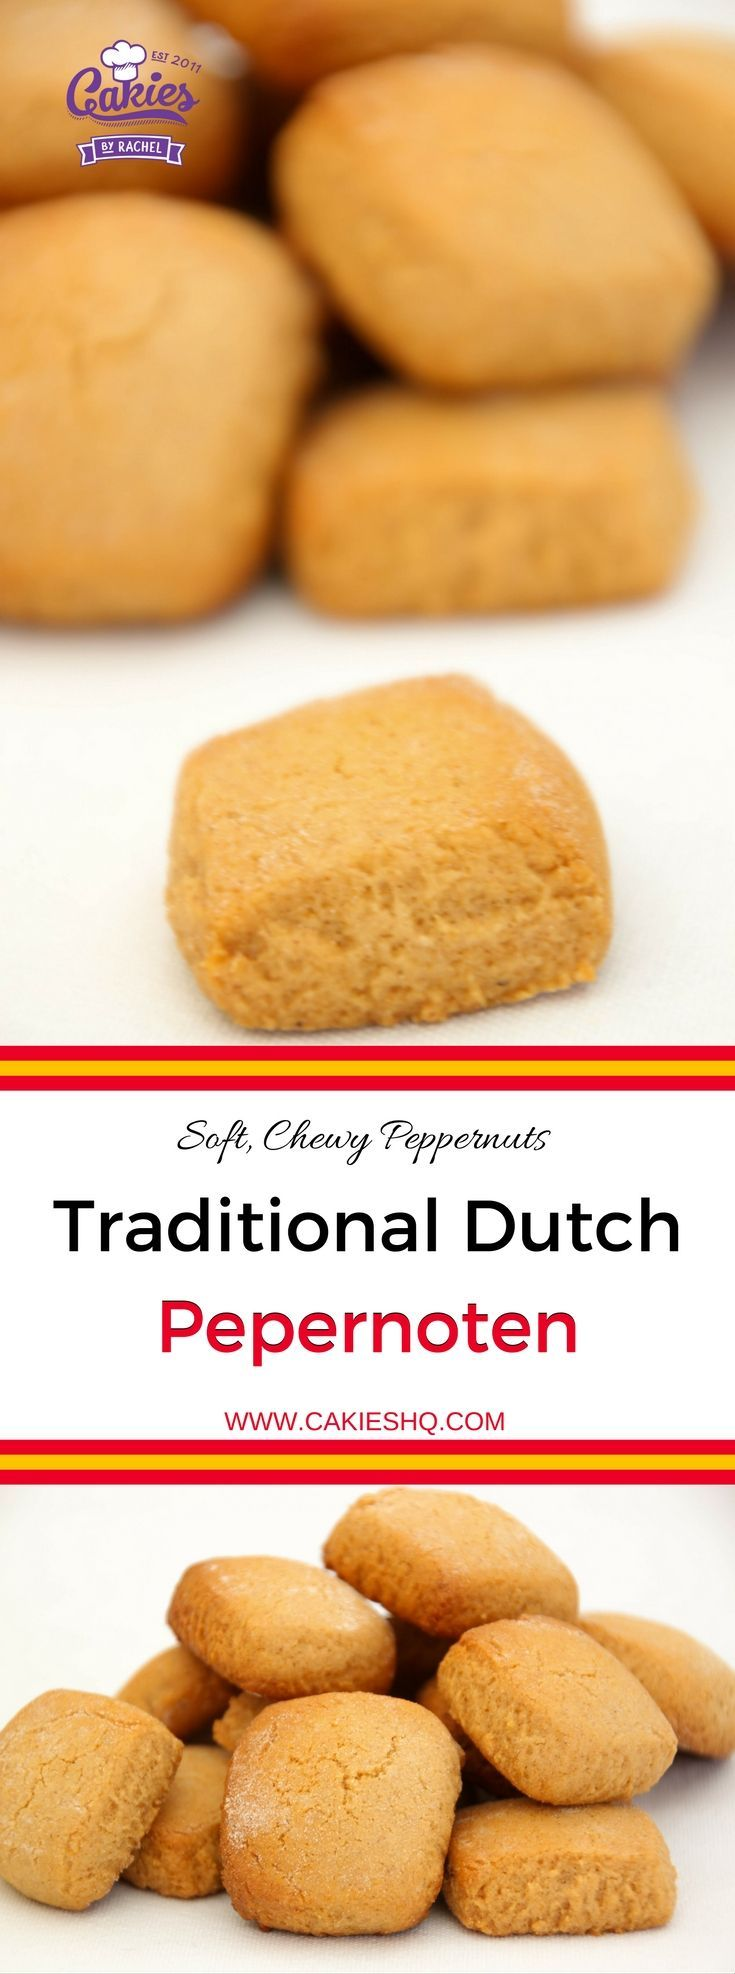 Traditional Dutch Pepernoten are more soft and chewy versus the crunchy pepernoten. A nice recipe for Sinterklaas, Thanksgiving or Christmas